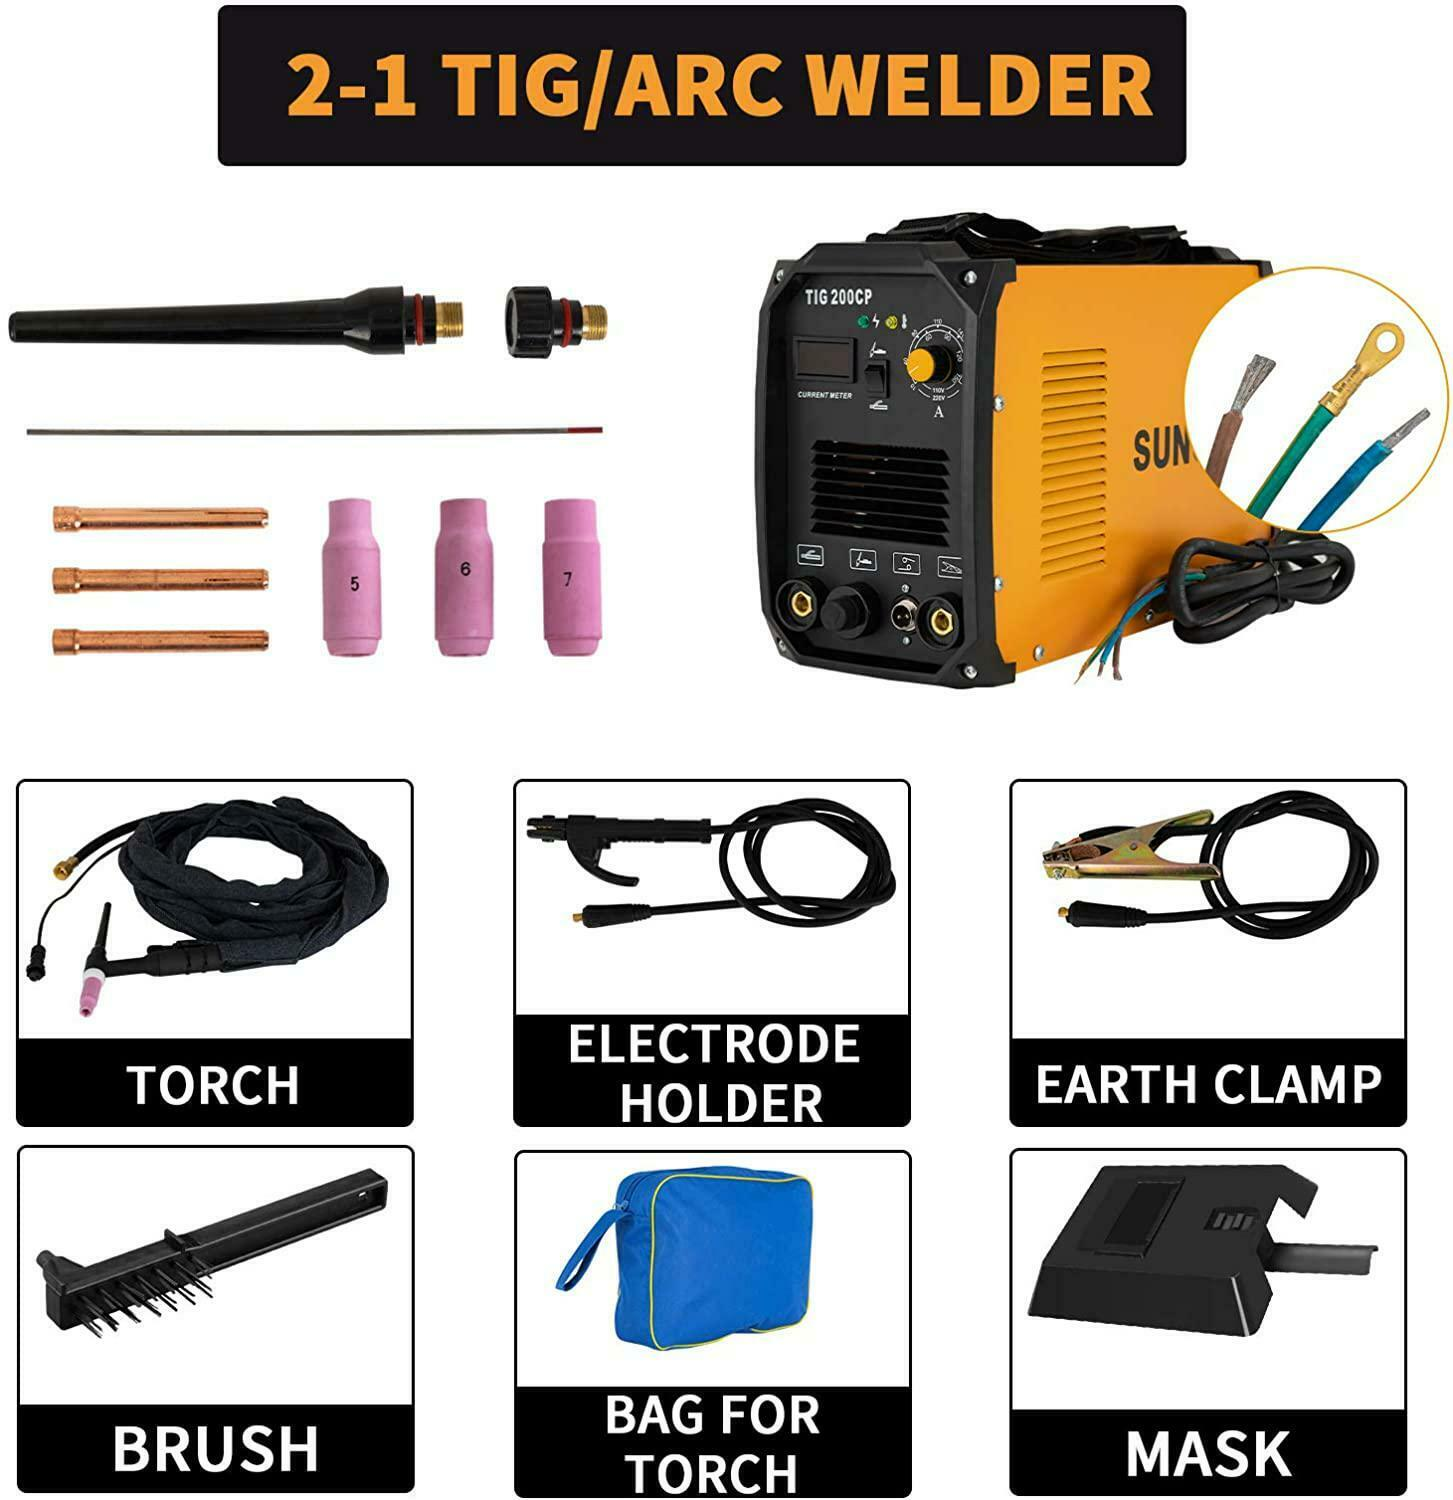 SUNCOO TIG Welder, 200 Amp TIG&MMA/STICK/ARC Welding Machine LED Digital Display. Available Now for 259.99